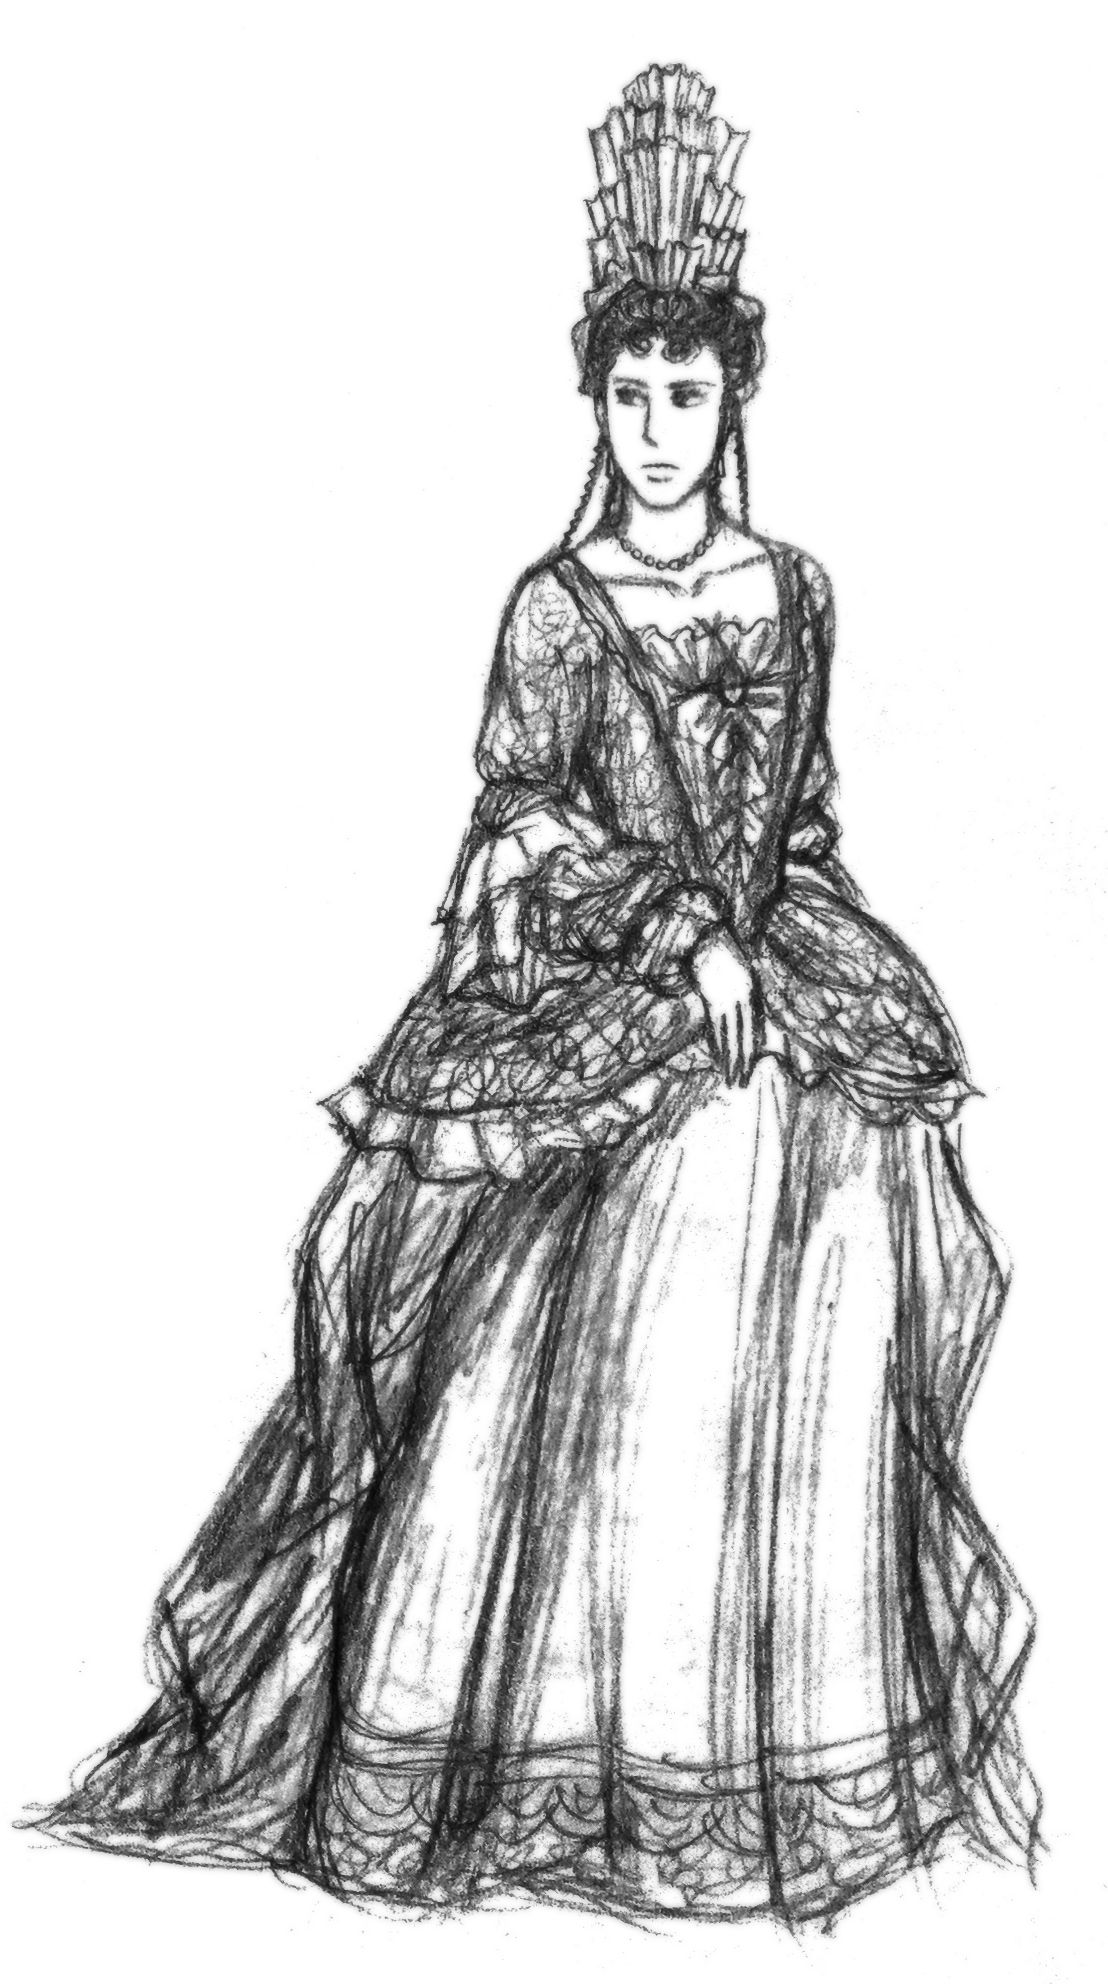 Another 17th century lady with fontange